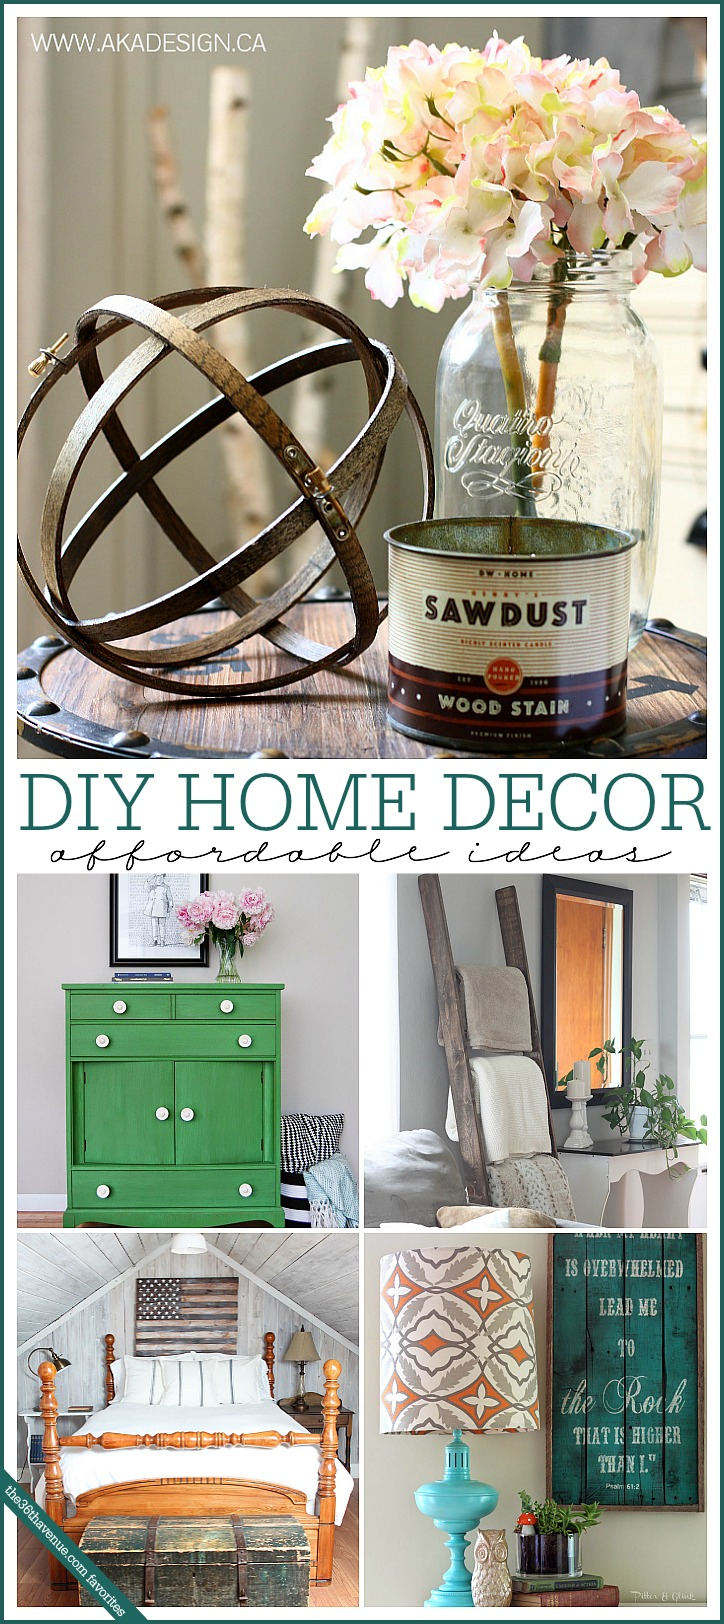 Home decor diy ideas the 36th avenue for Home decor ideas at home